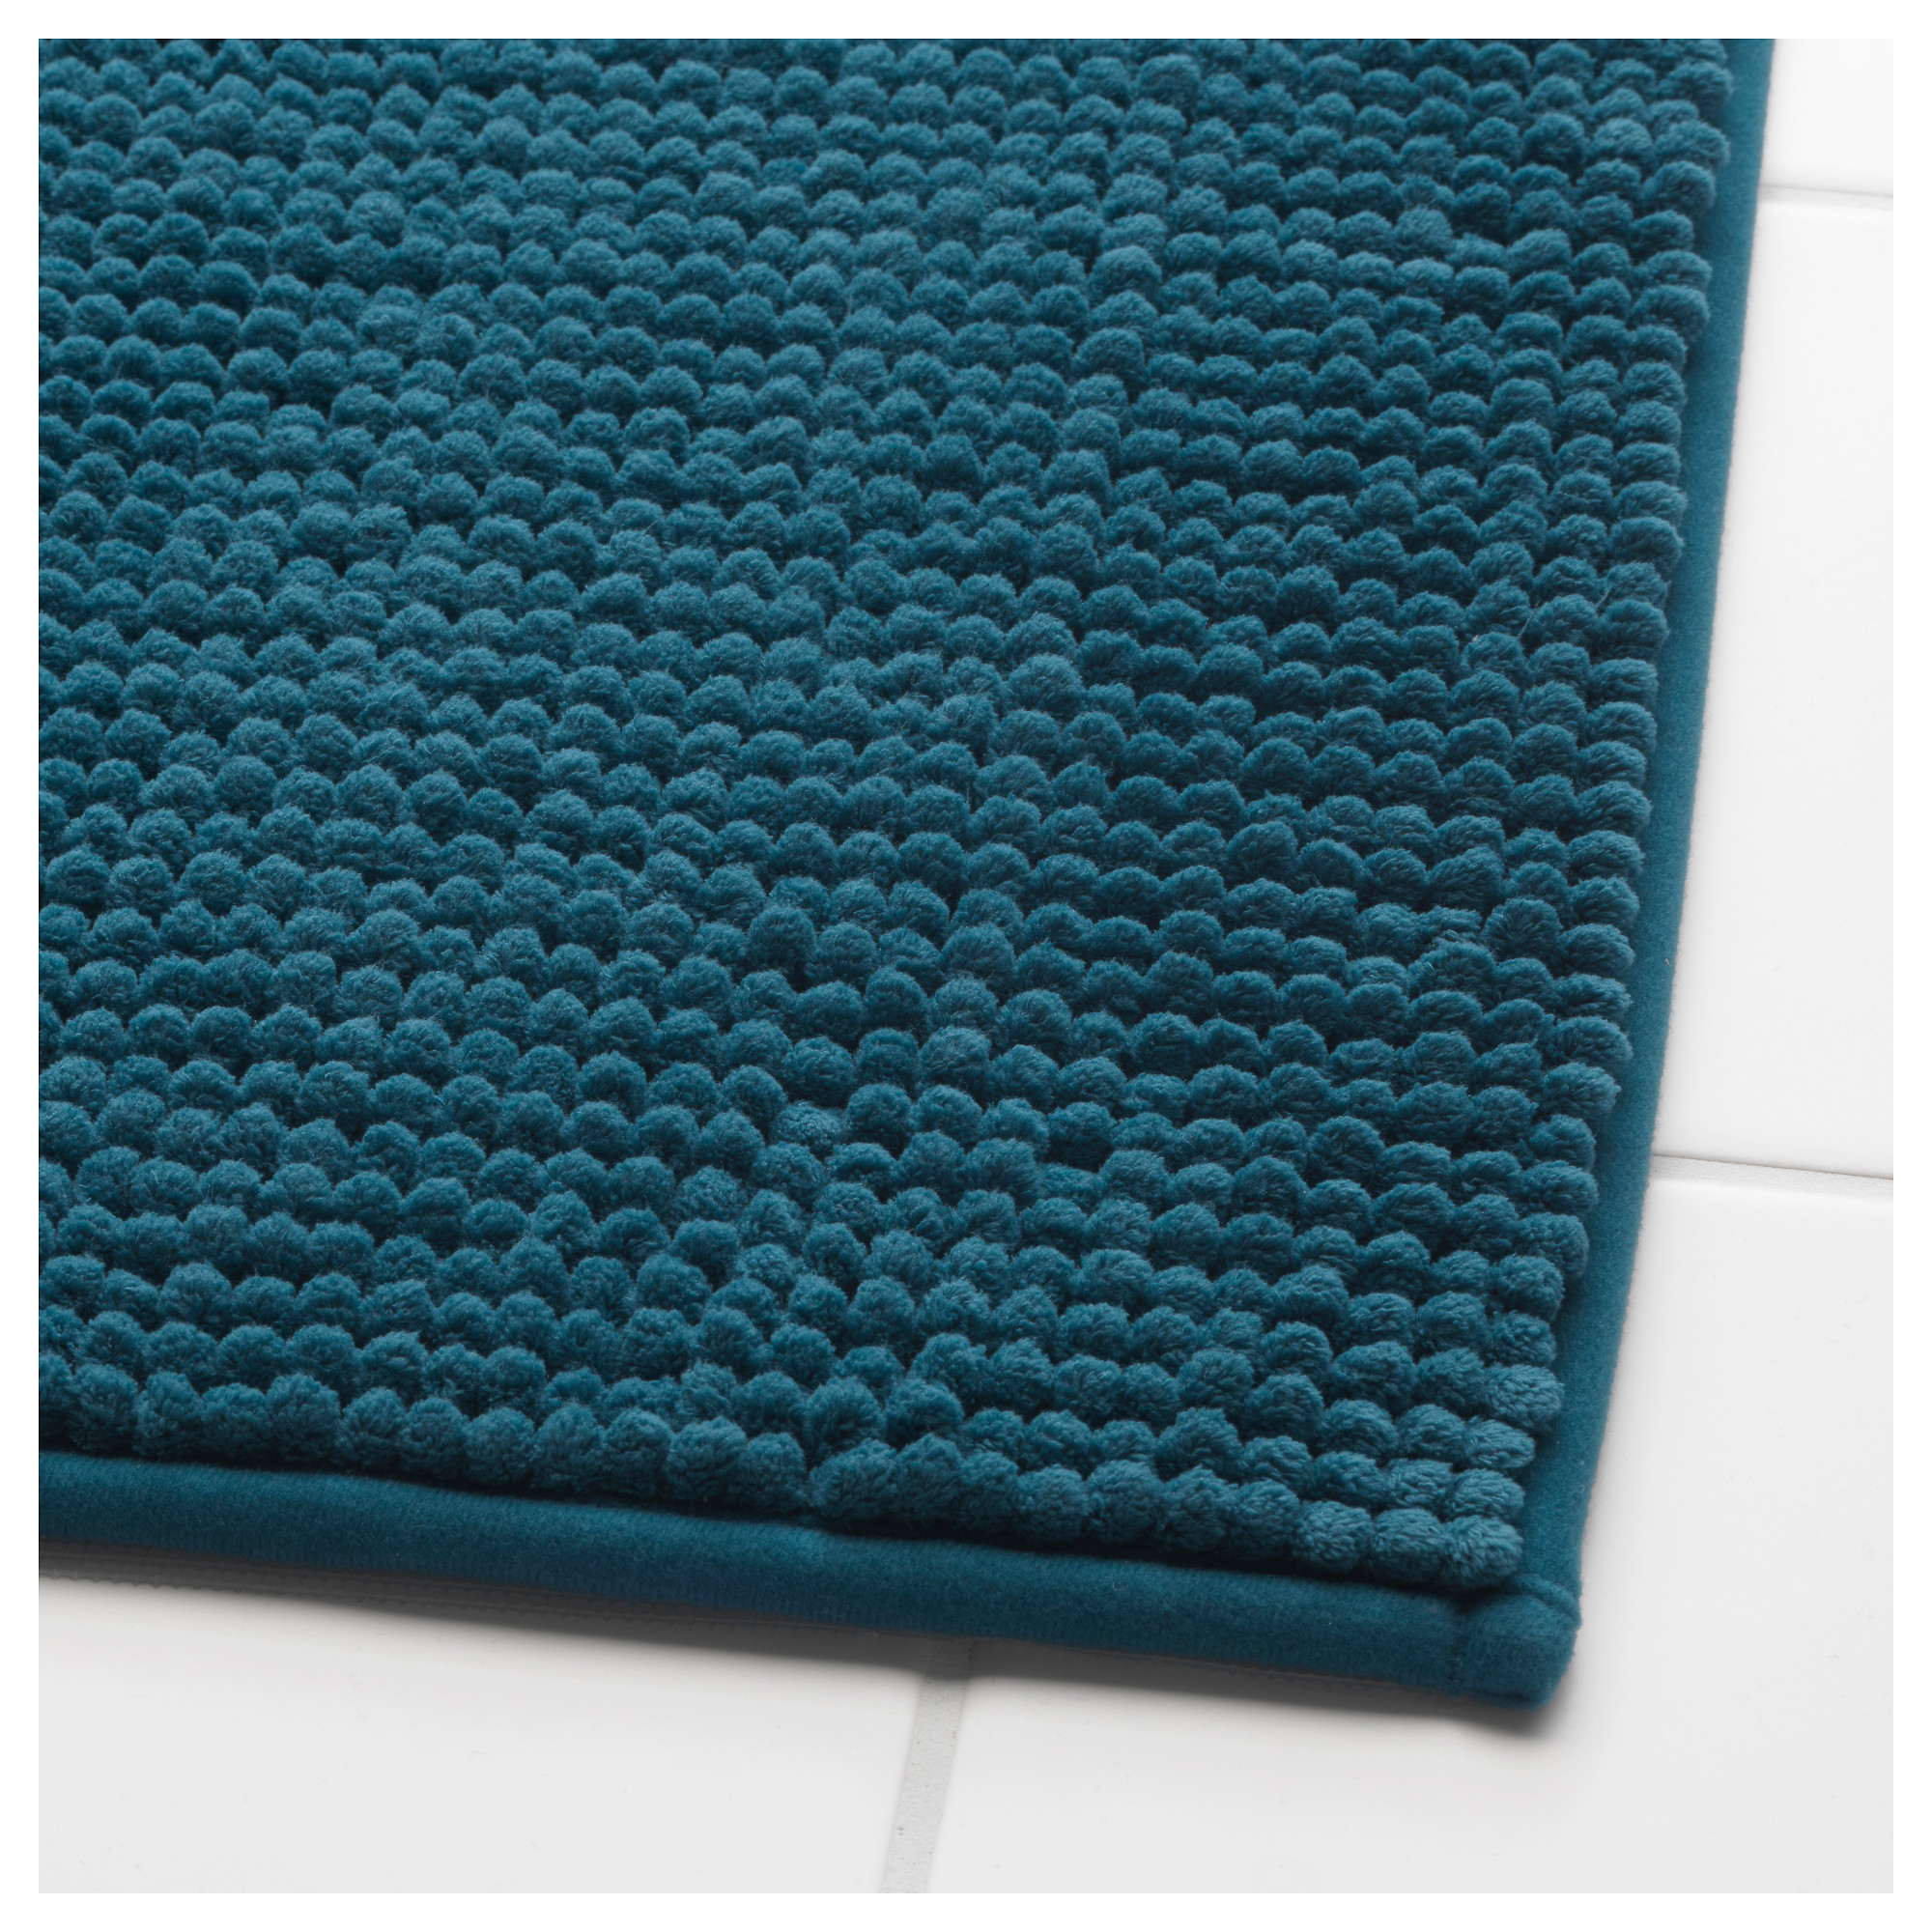 Ikea Badezimmerteppich Furniture And Home Furnishings Basement Bath Teal Bath Mats